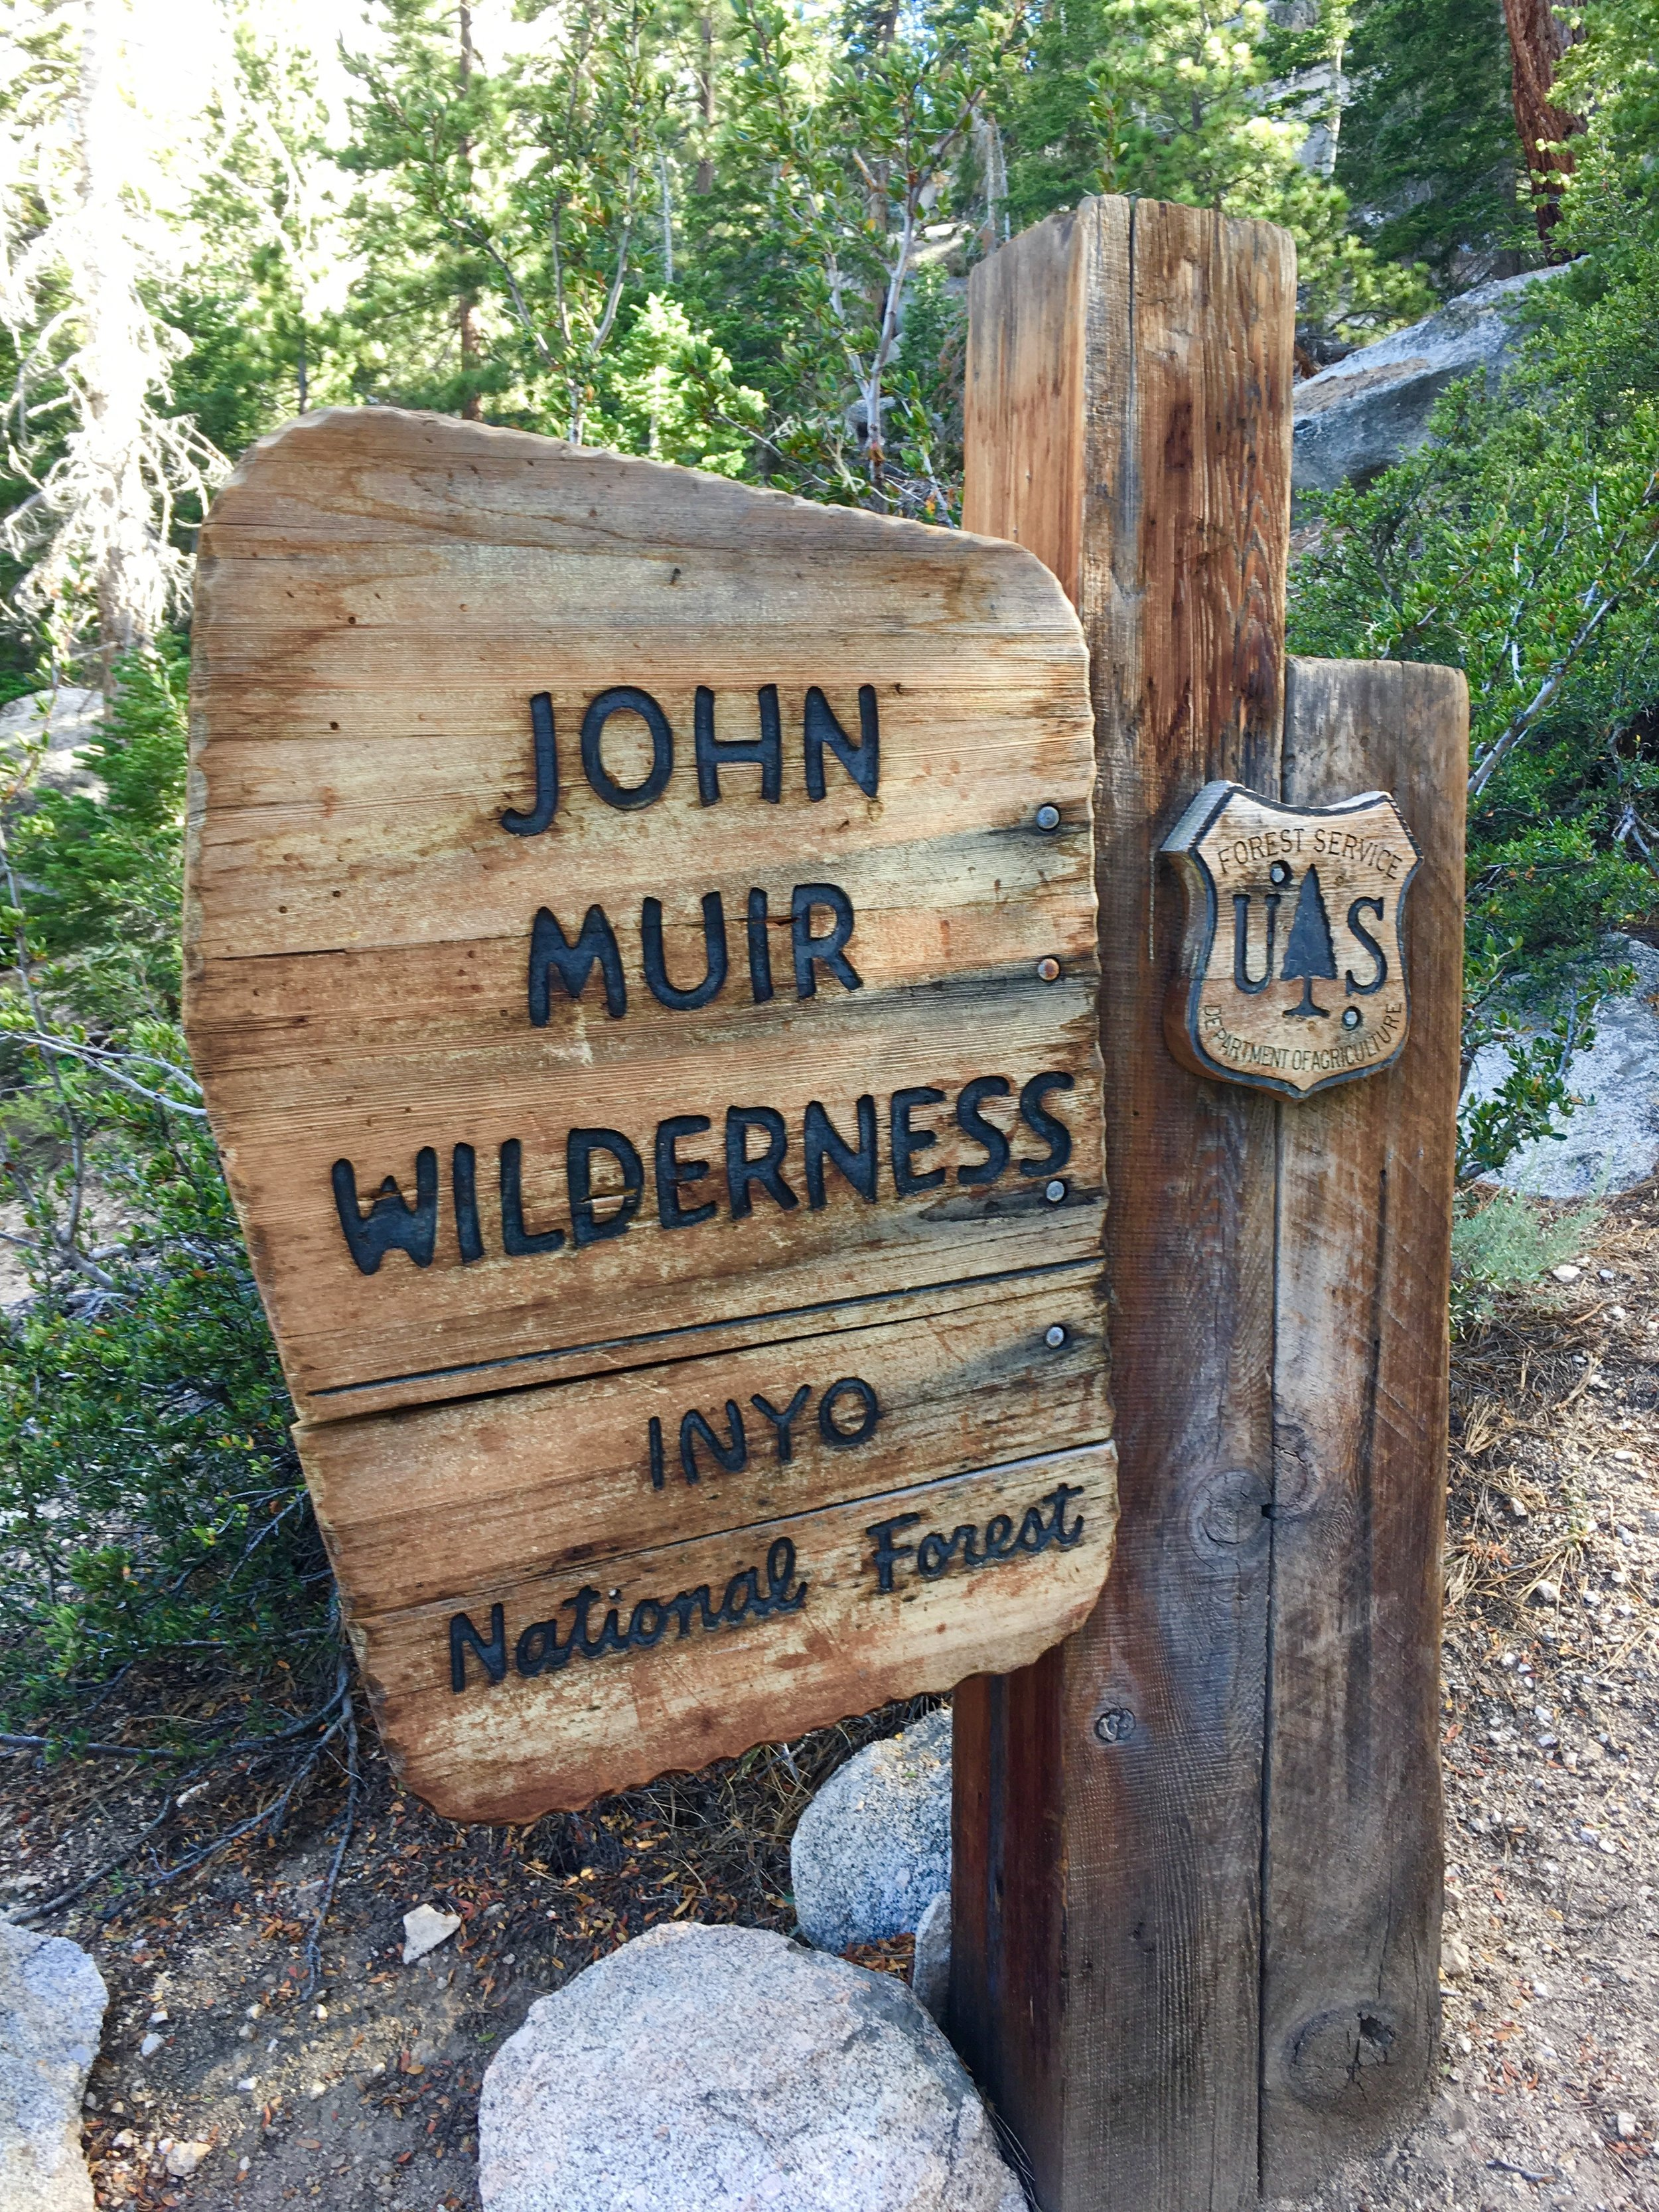 John Muir Wilderness sign on the trail